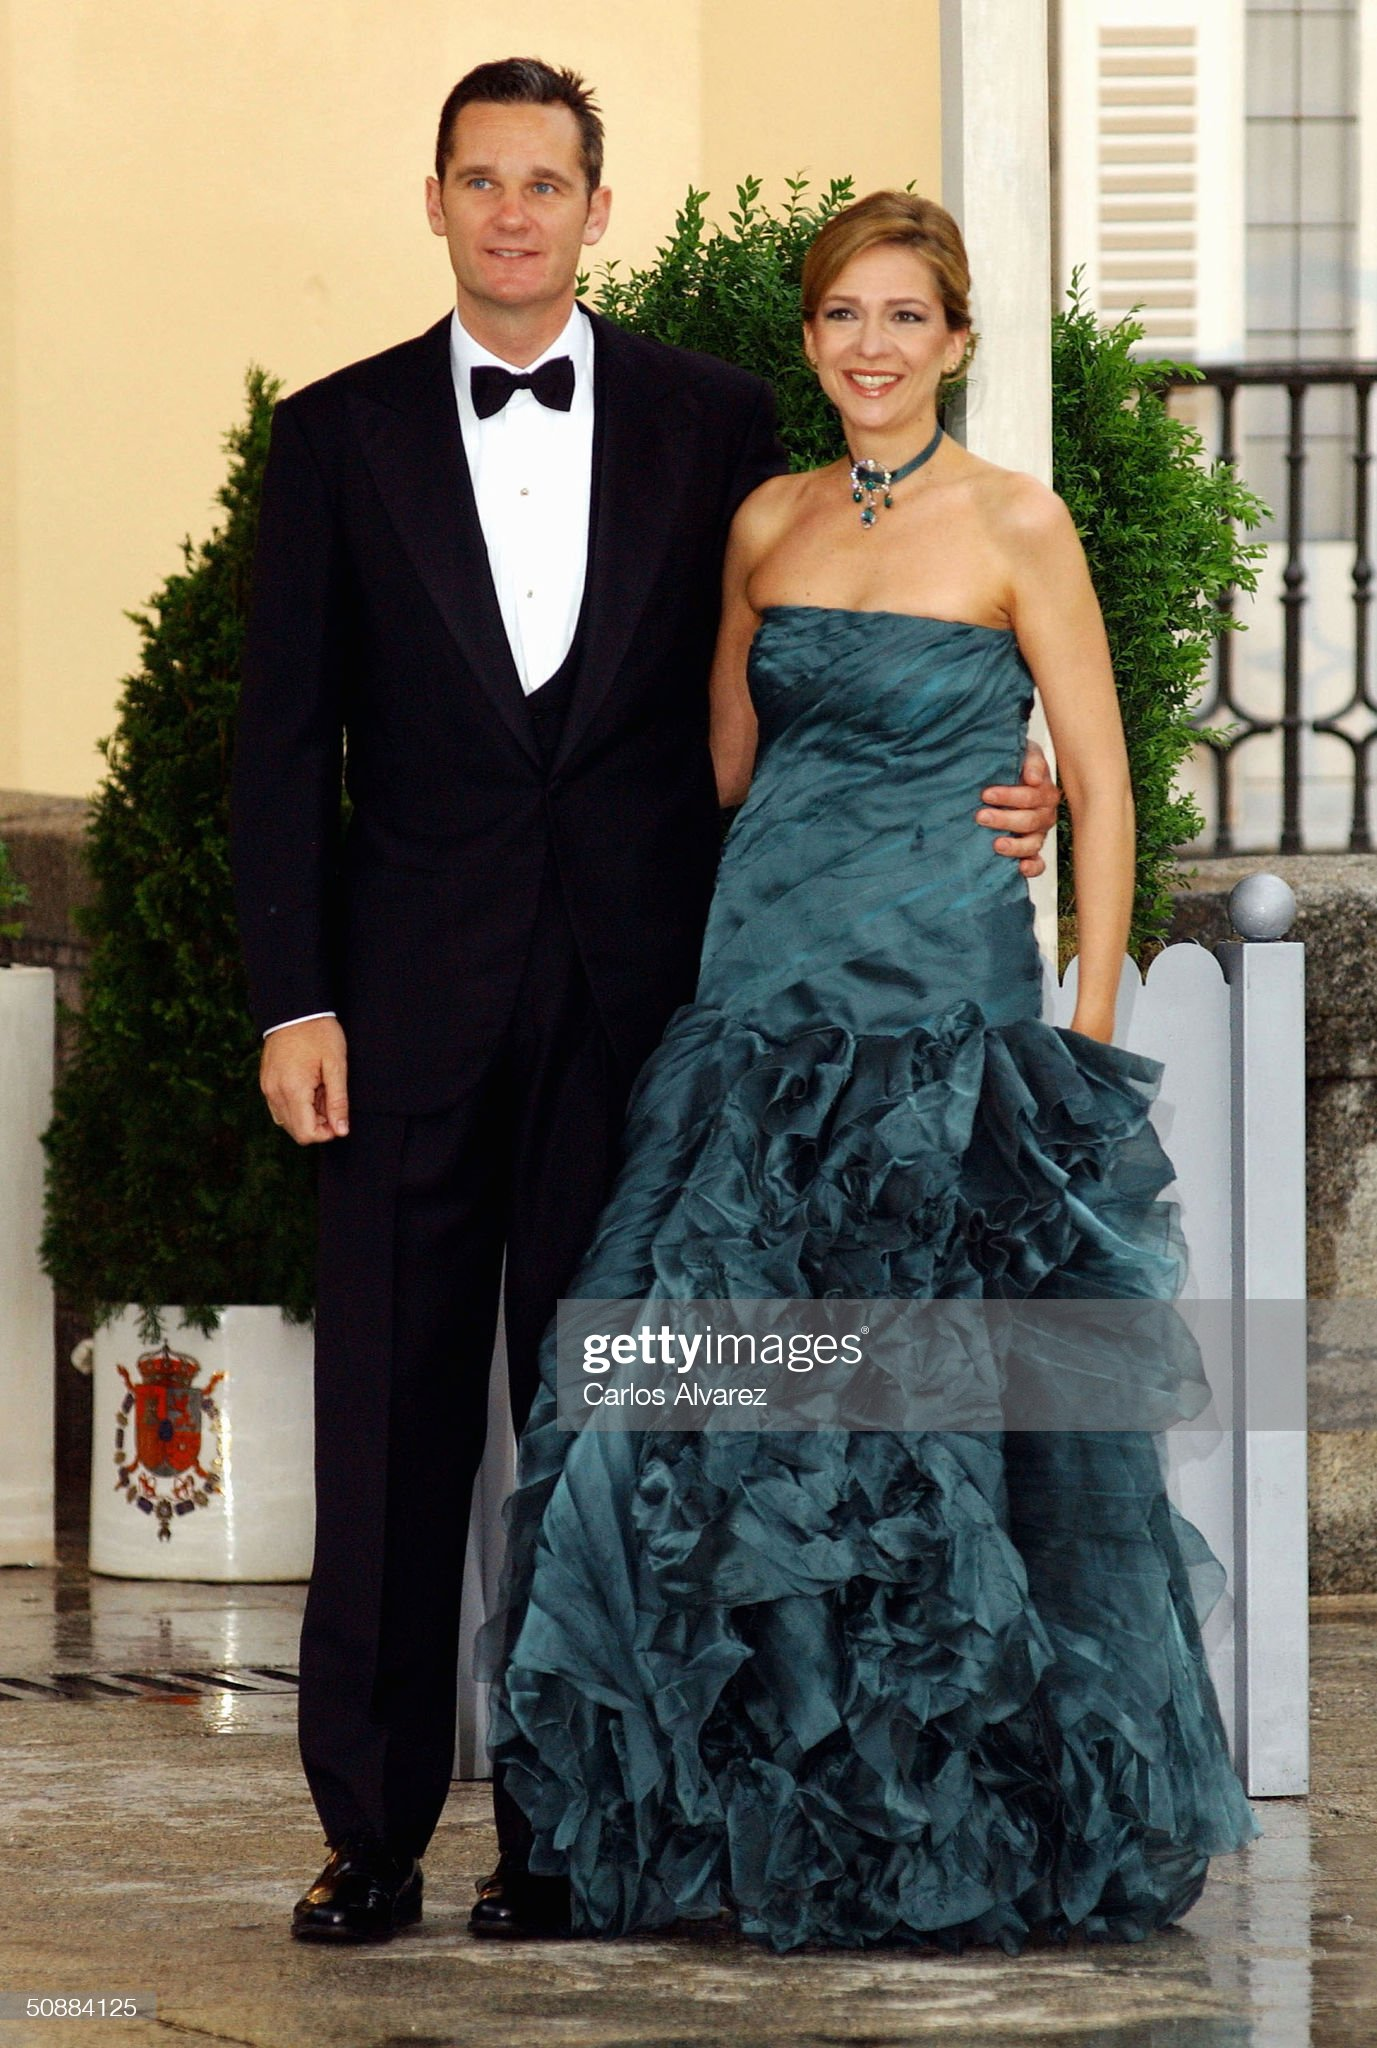 Gala Dinner at El Pardo Palace In Preparation For Royal Wedding : News Photo